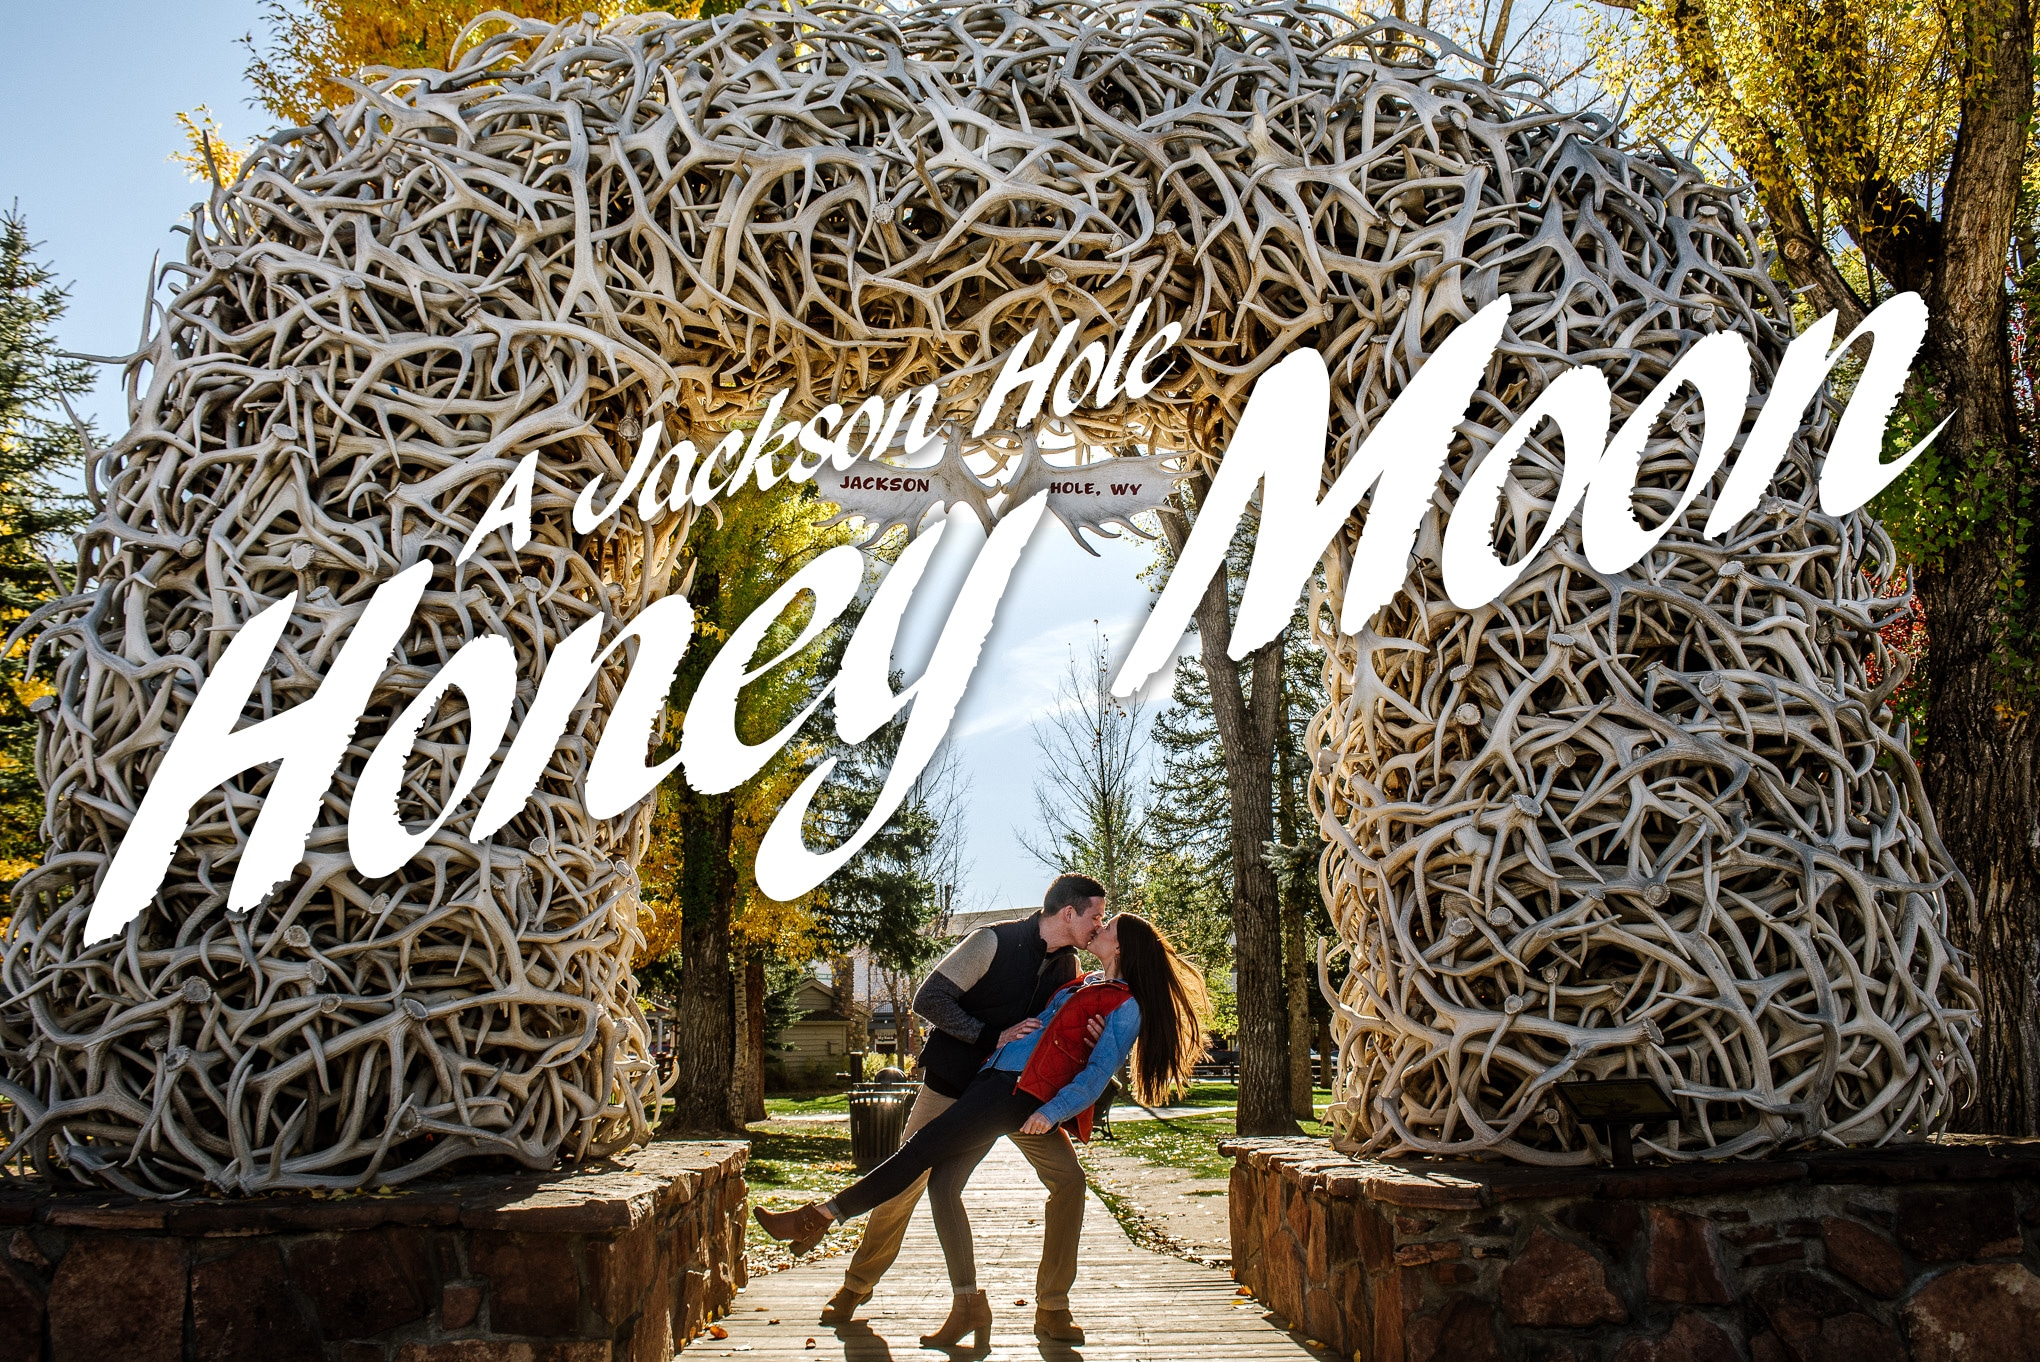 jackson-hole-wyoming-honeymoon